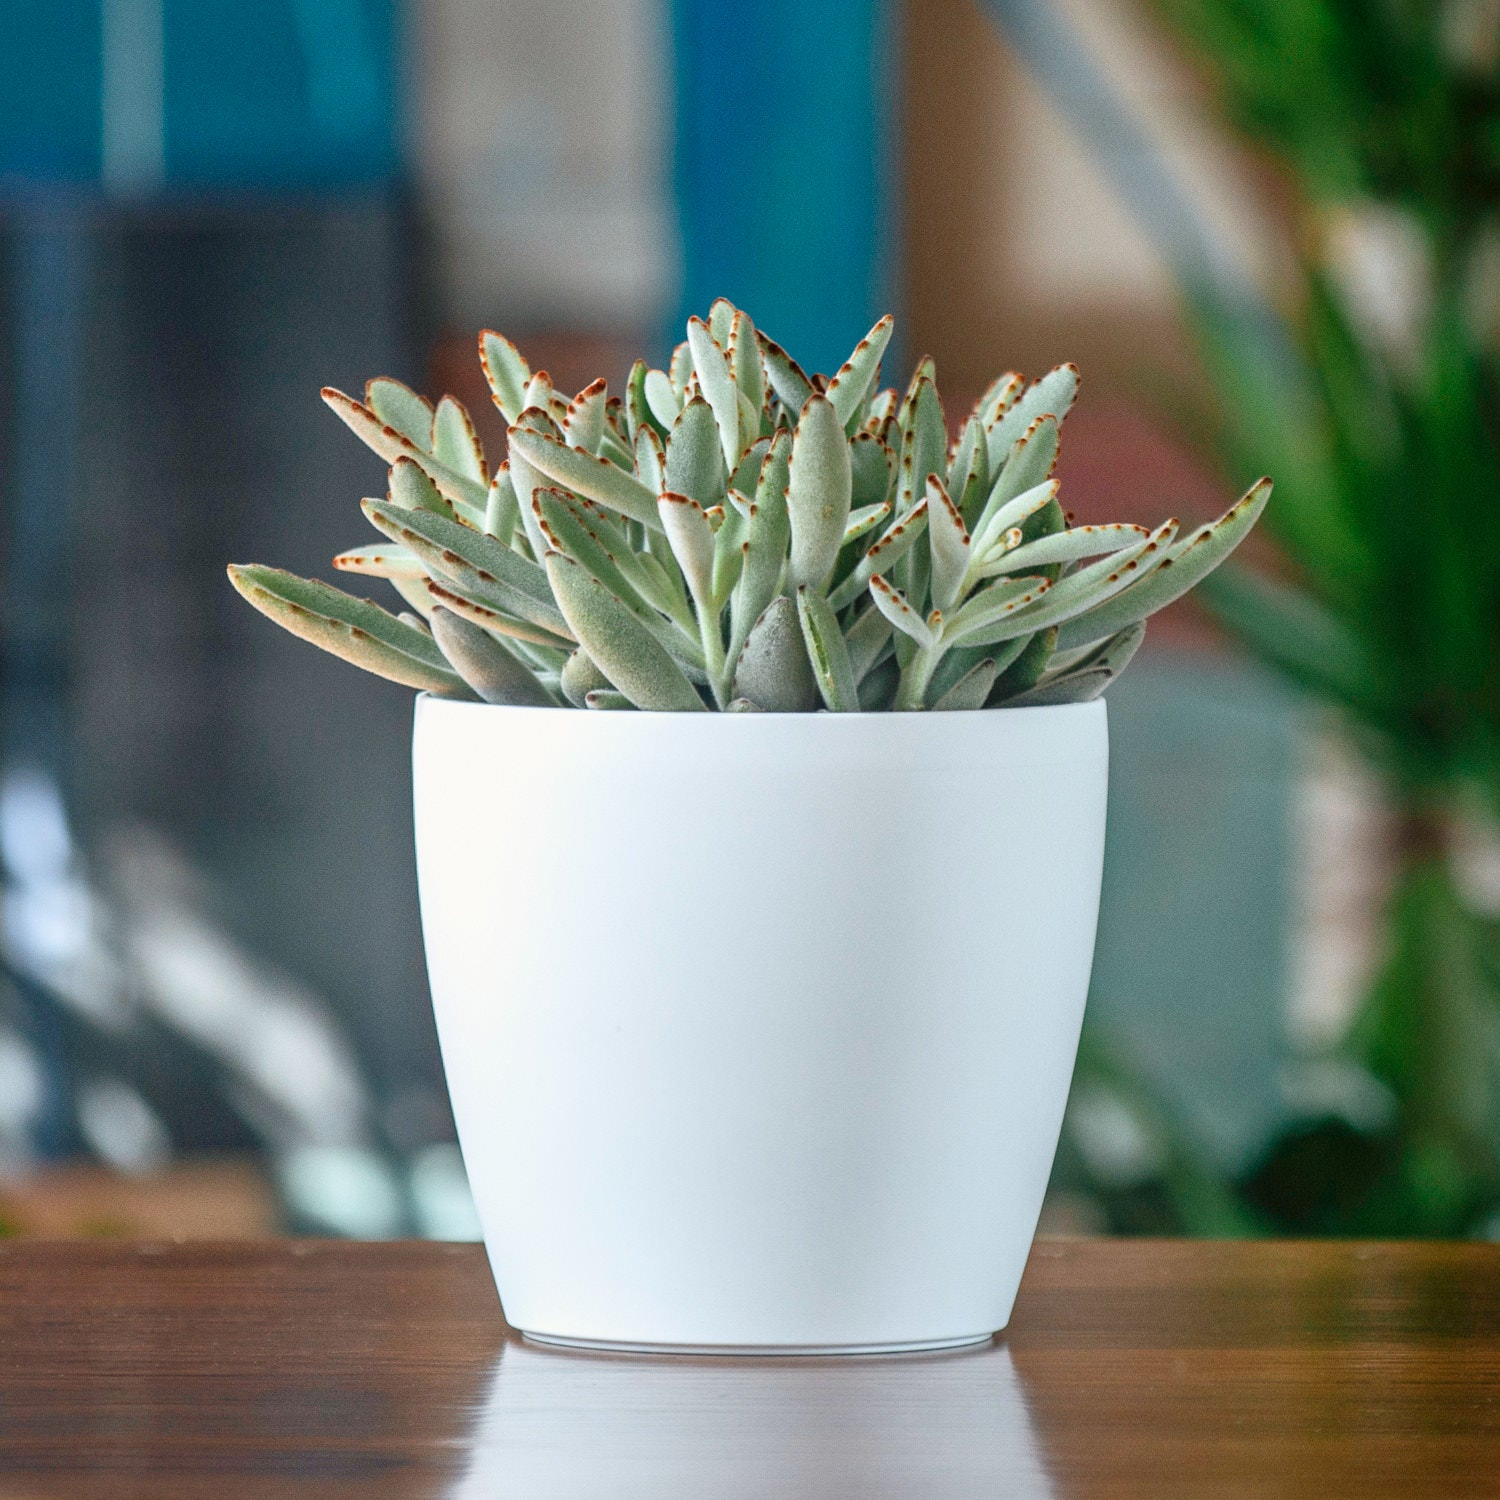 Kalanchoe Panda In Lechuza Classico Trend White Planter | My City Plants